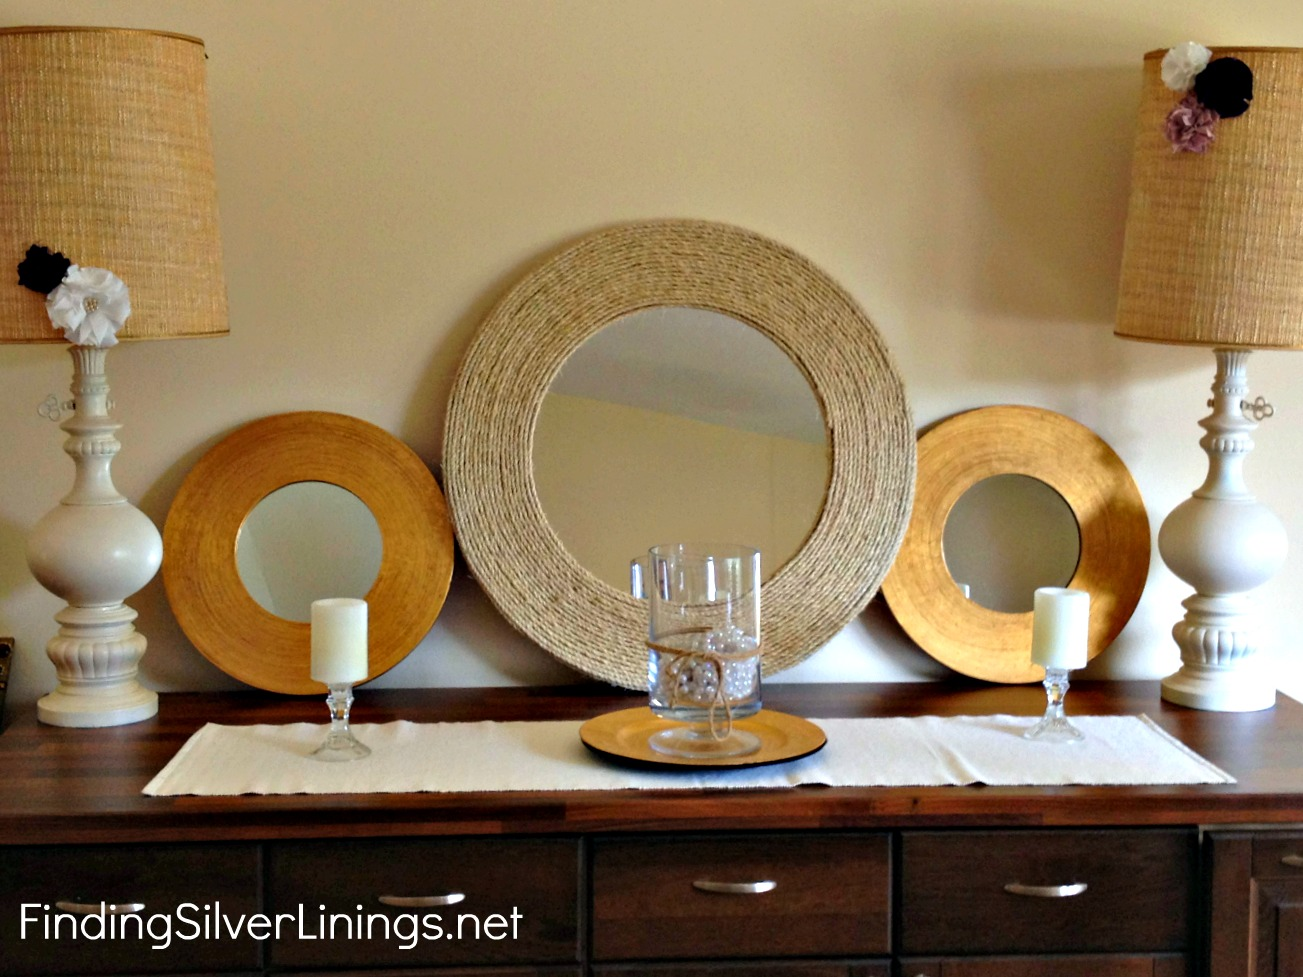 Very best Pinterest Challenge: D-I-Y Rope Mirror | Finding Silver Linings UT23